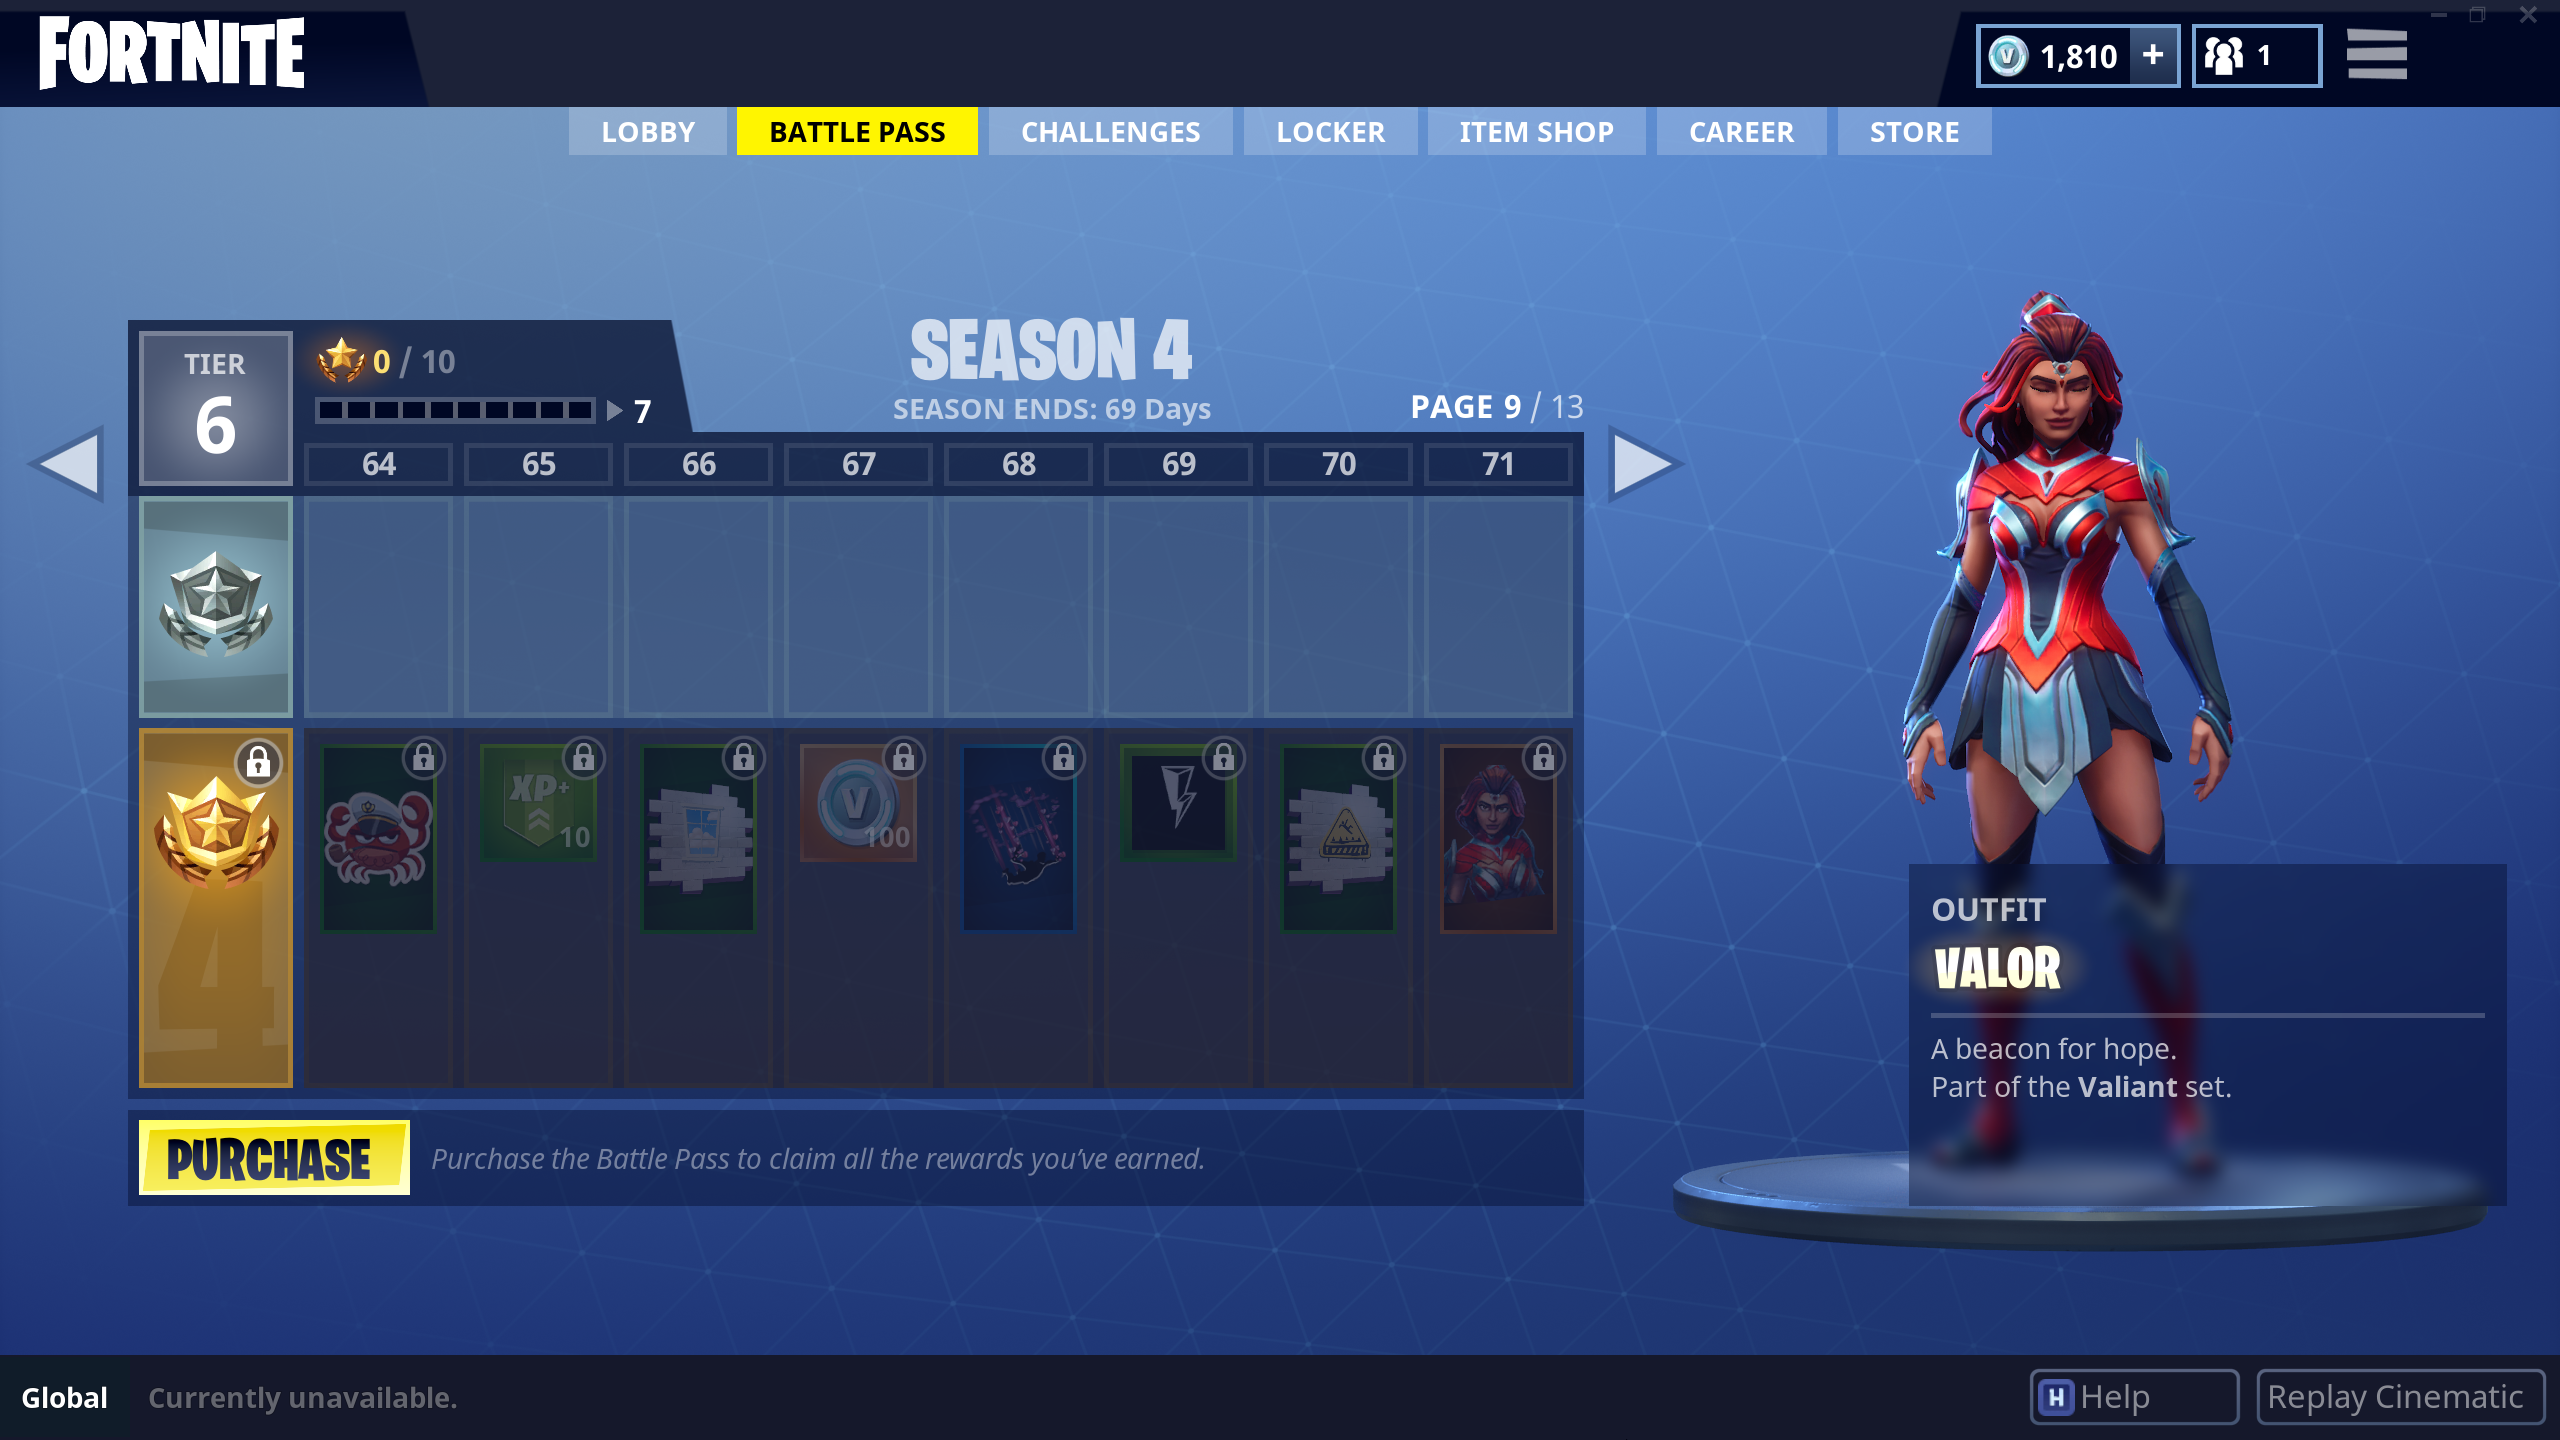 All Skins For Fortnite Battle Royale Season 4 Fortnite